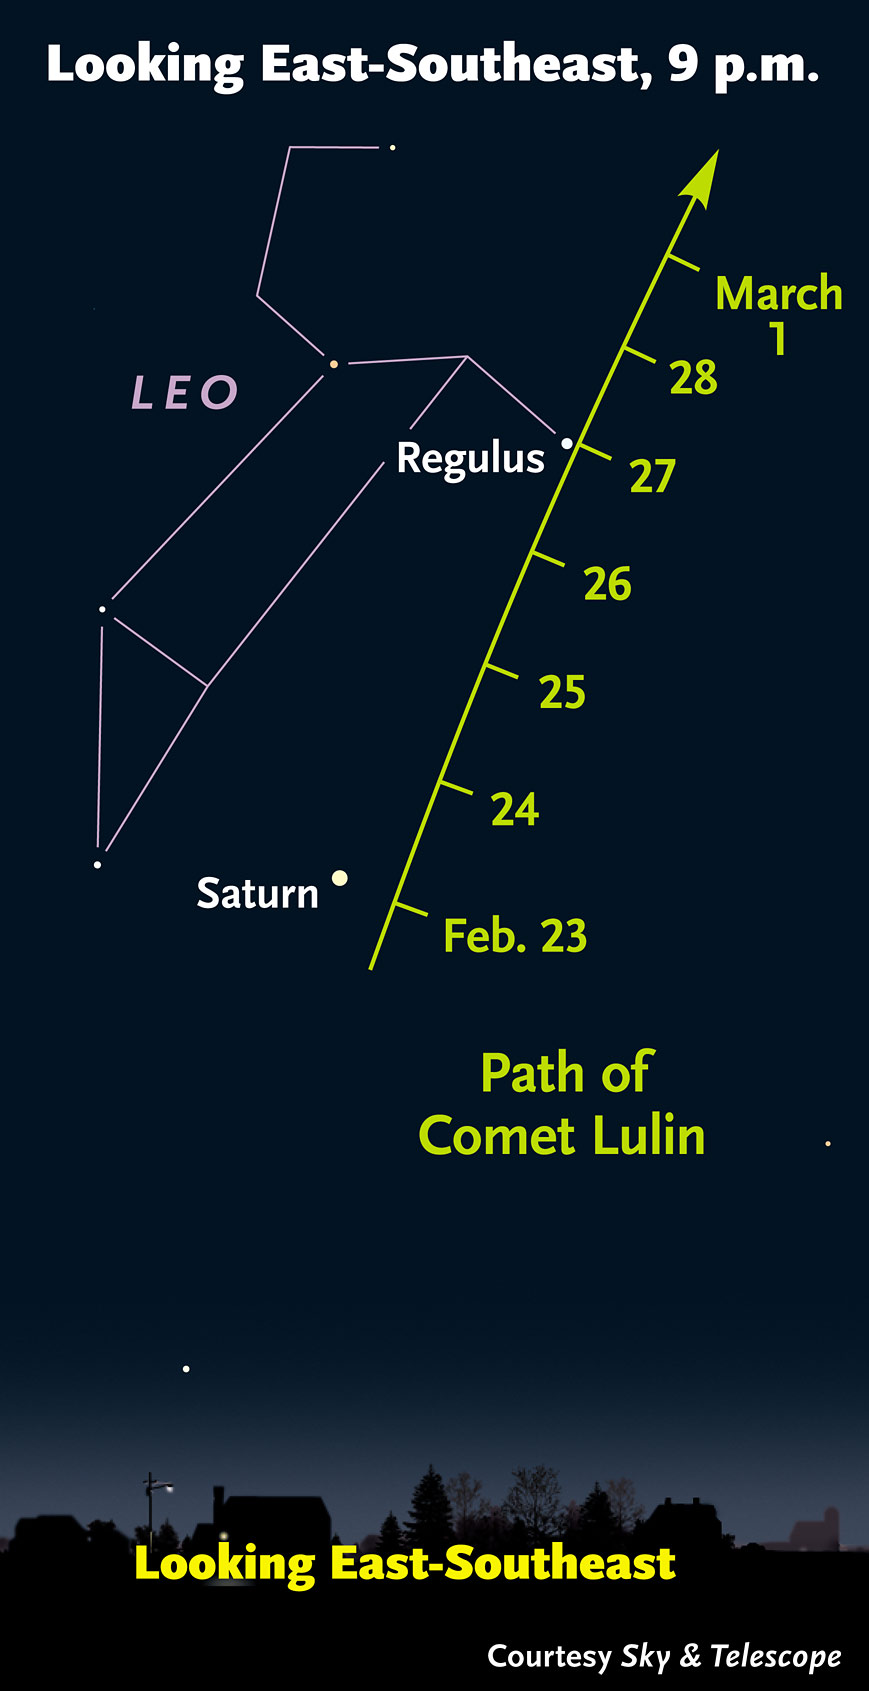 Spotting comet Lulin